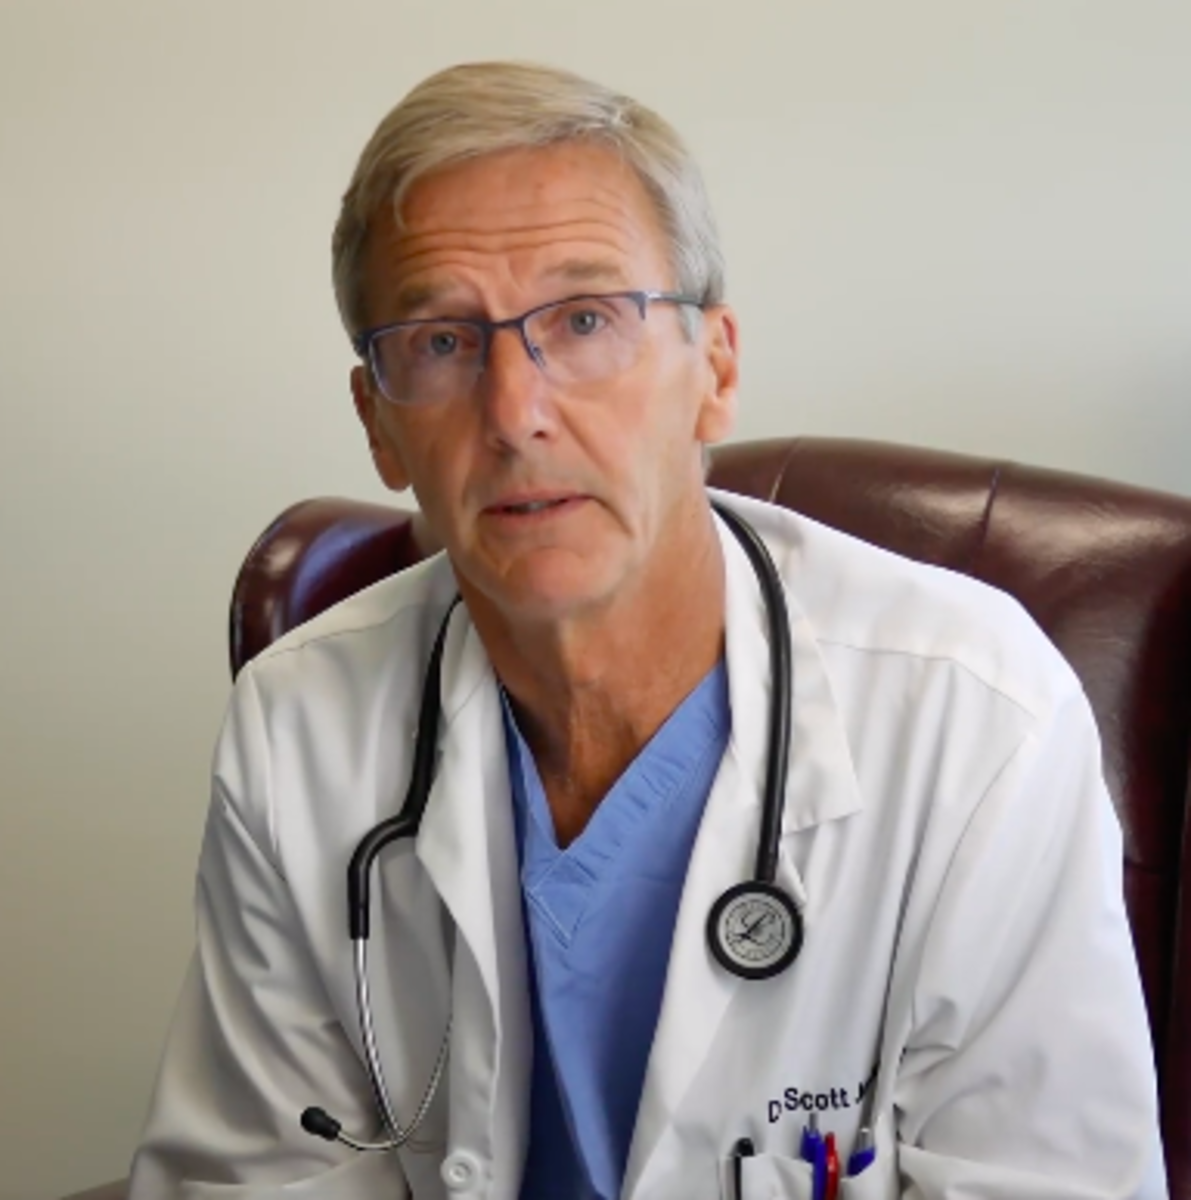 Minnesota Dr. Scott Jensen, Who Exposed State